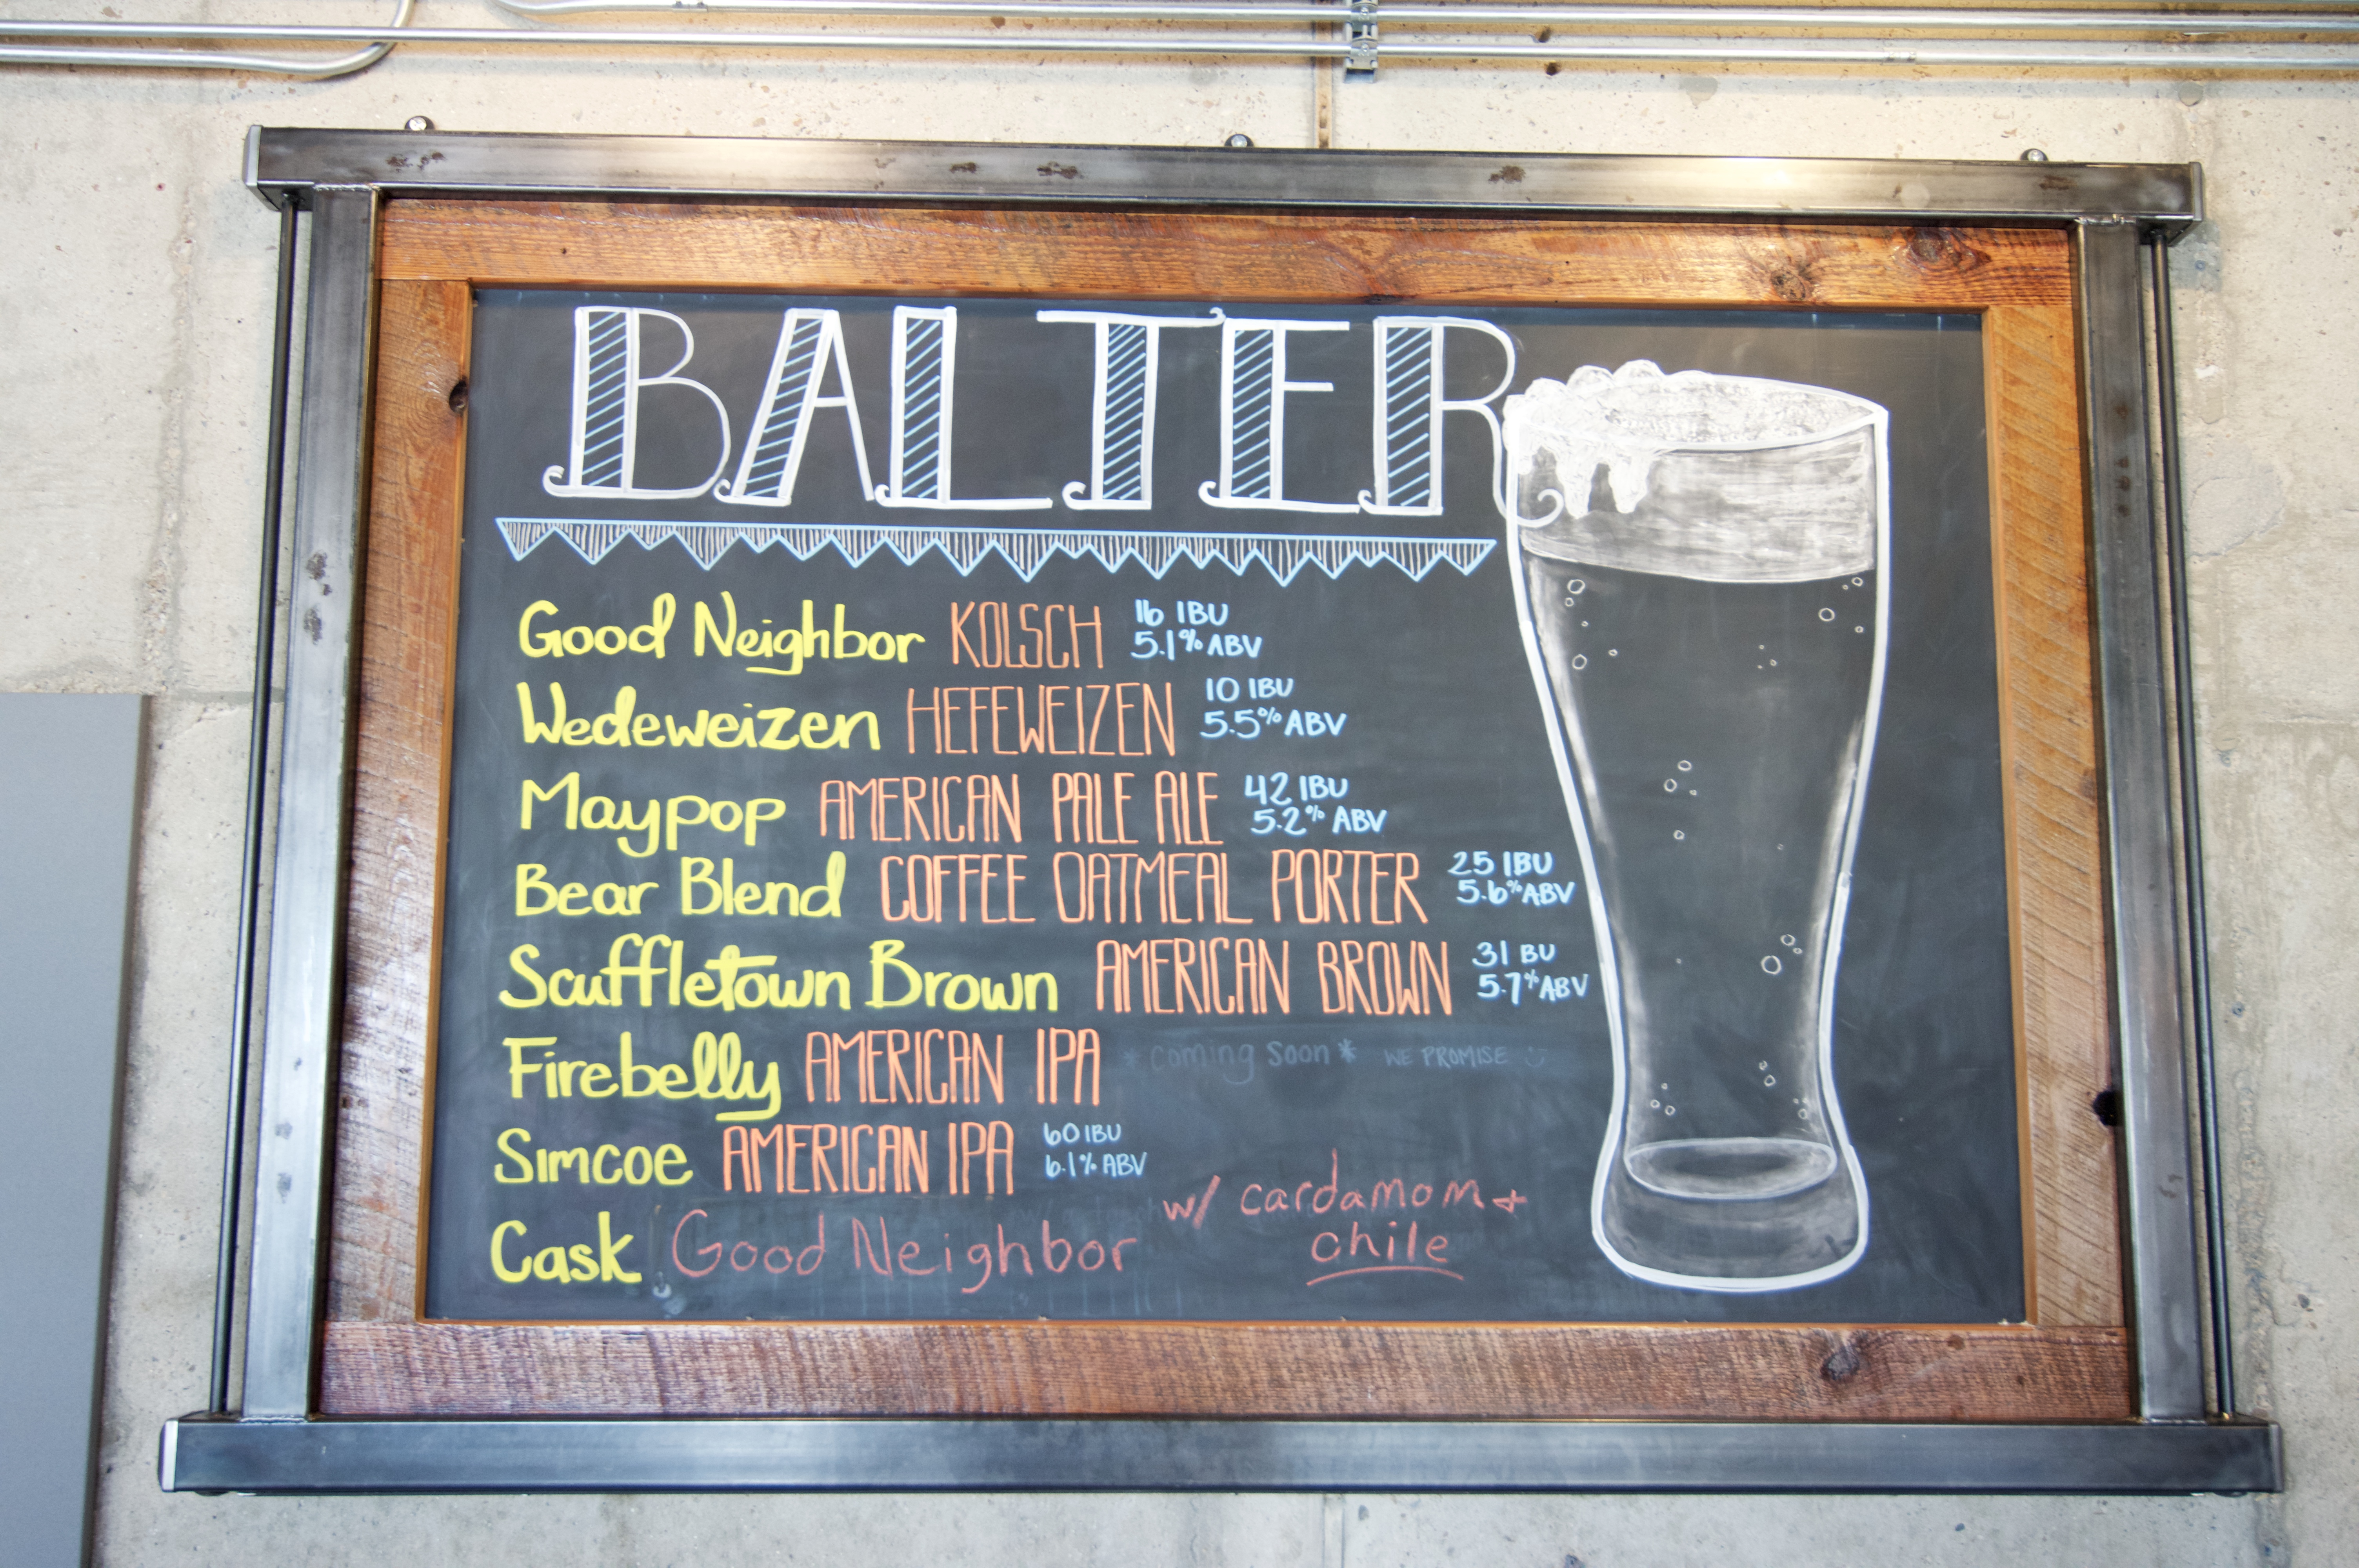 Balter Beerworks menu, Knoxville